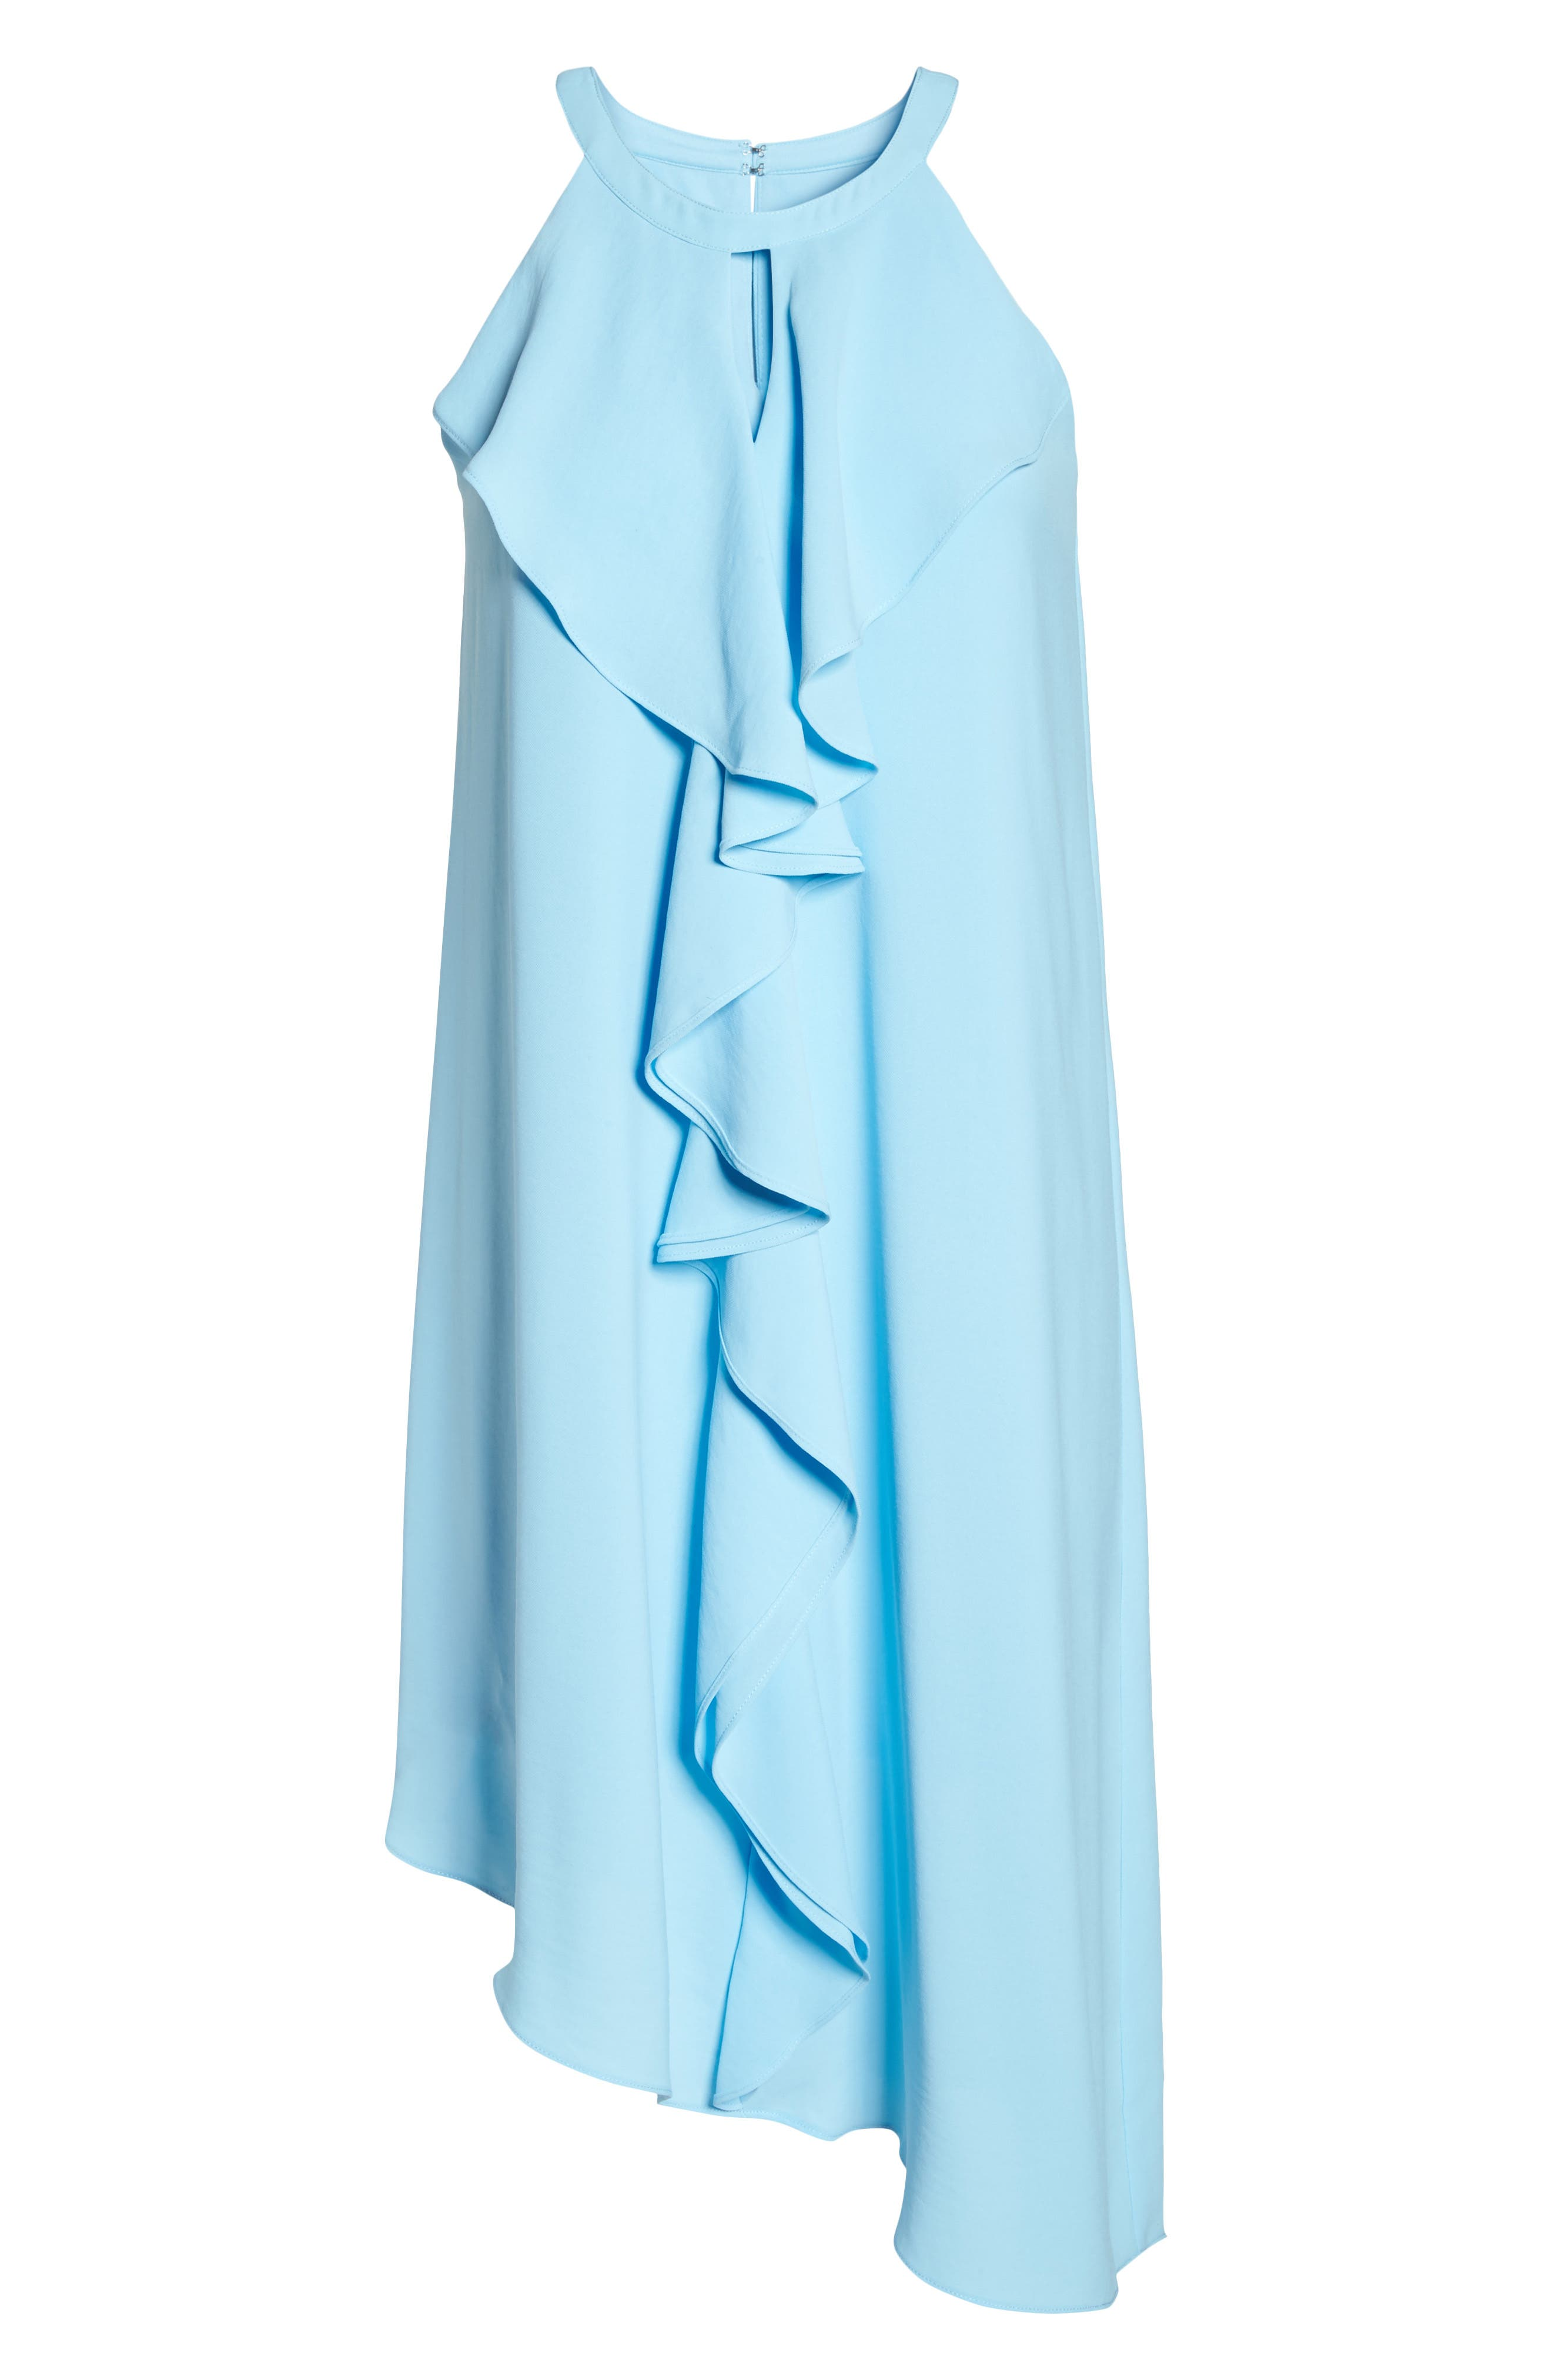 Double Ruffle Gauzy Crepe Shift Dress,                             Alternate thumbnail 6, color,                             Azure Mist